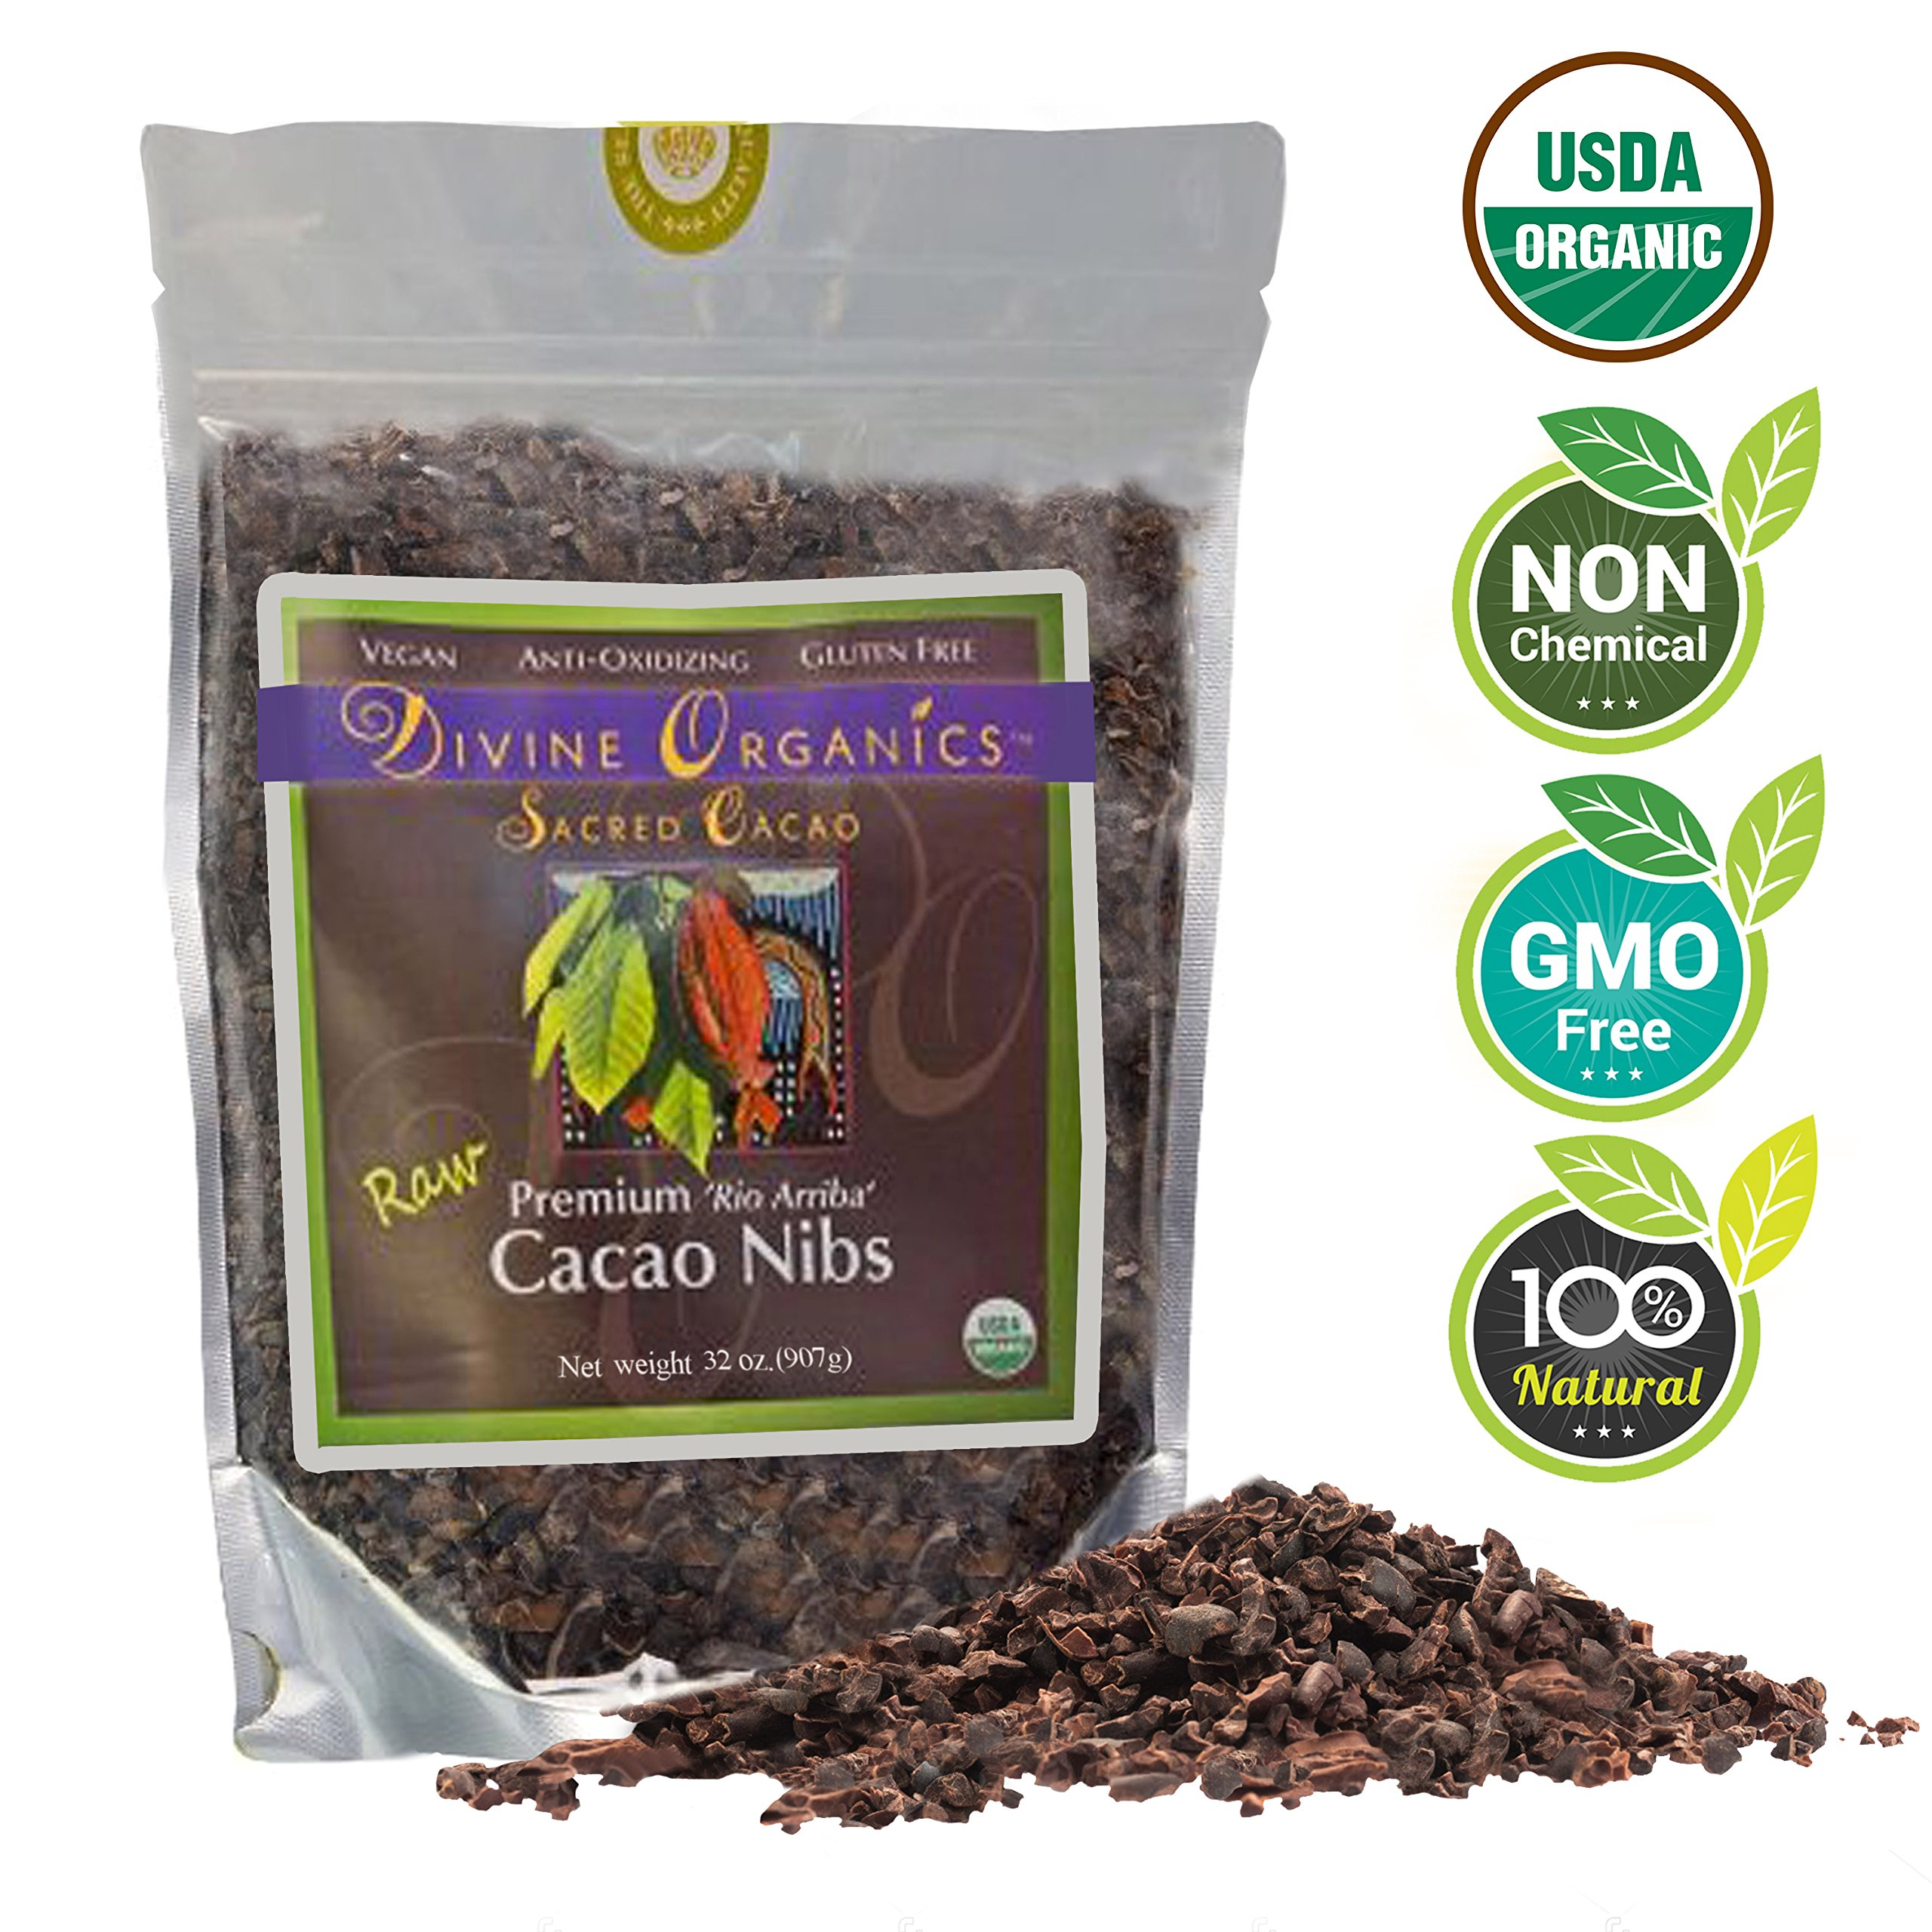 Divine Organics Raw Cacao / Cocoa Nibs - Certified Organic - Premium Rio Arriba - Smoothies, Baking, Snacks, Salads, Trail Mixes - Chocolate Chips Substitute - Rich in Magnesium (32oz)